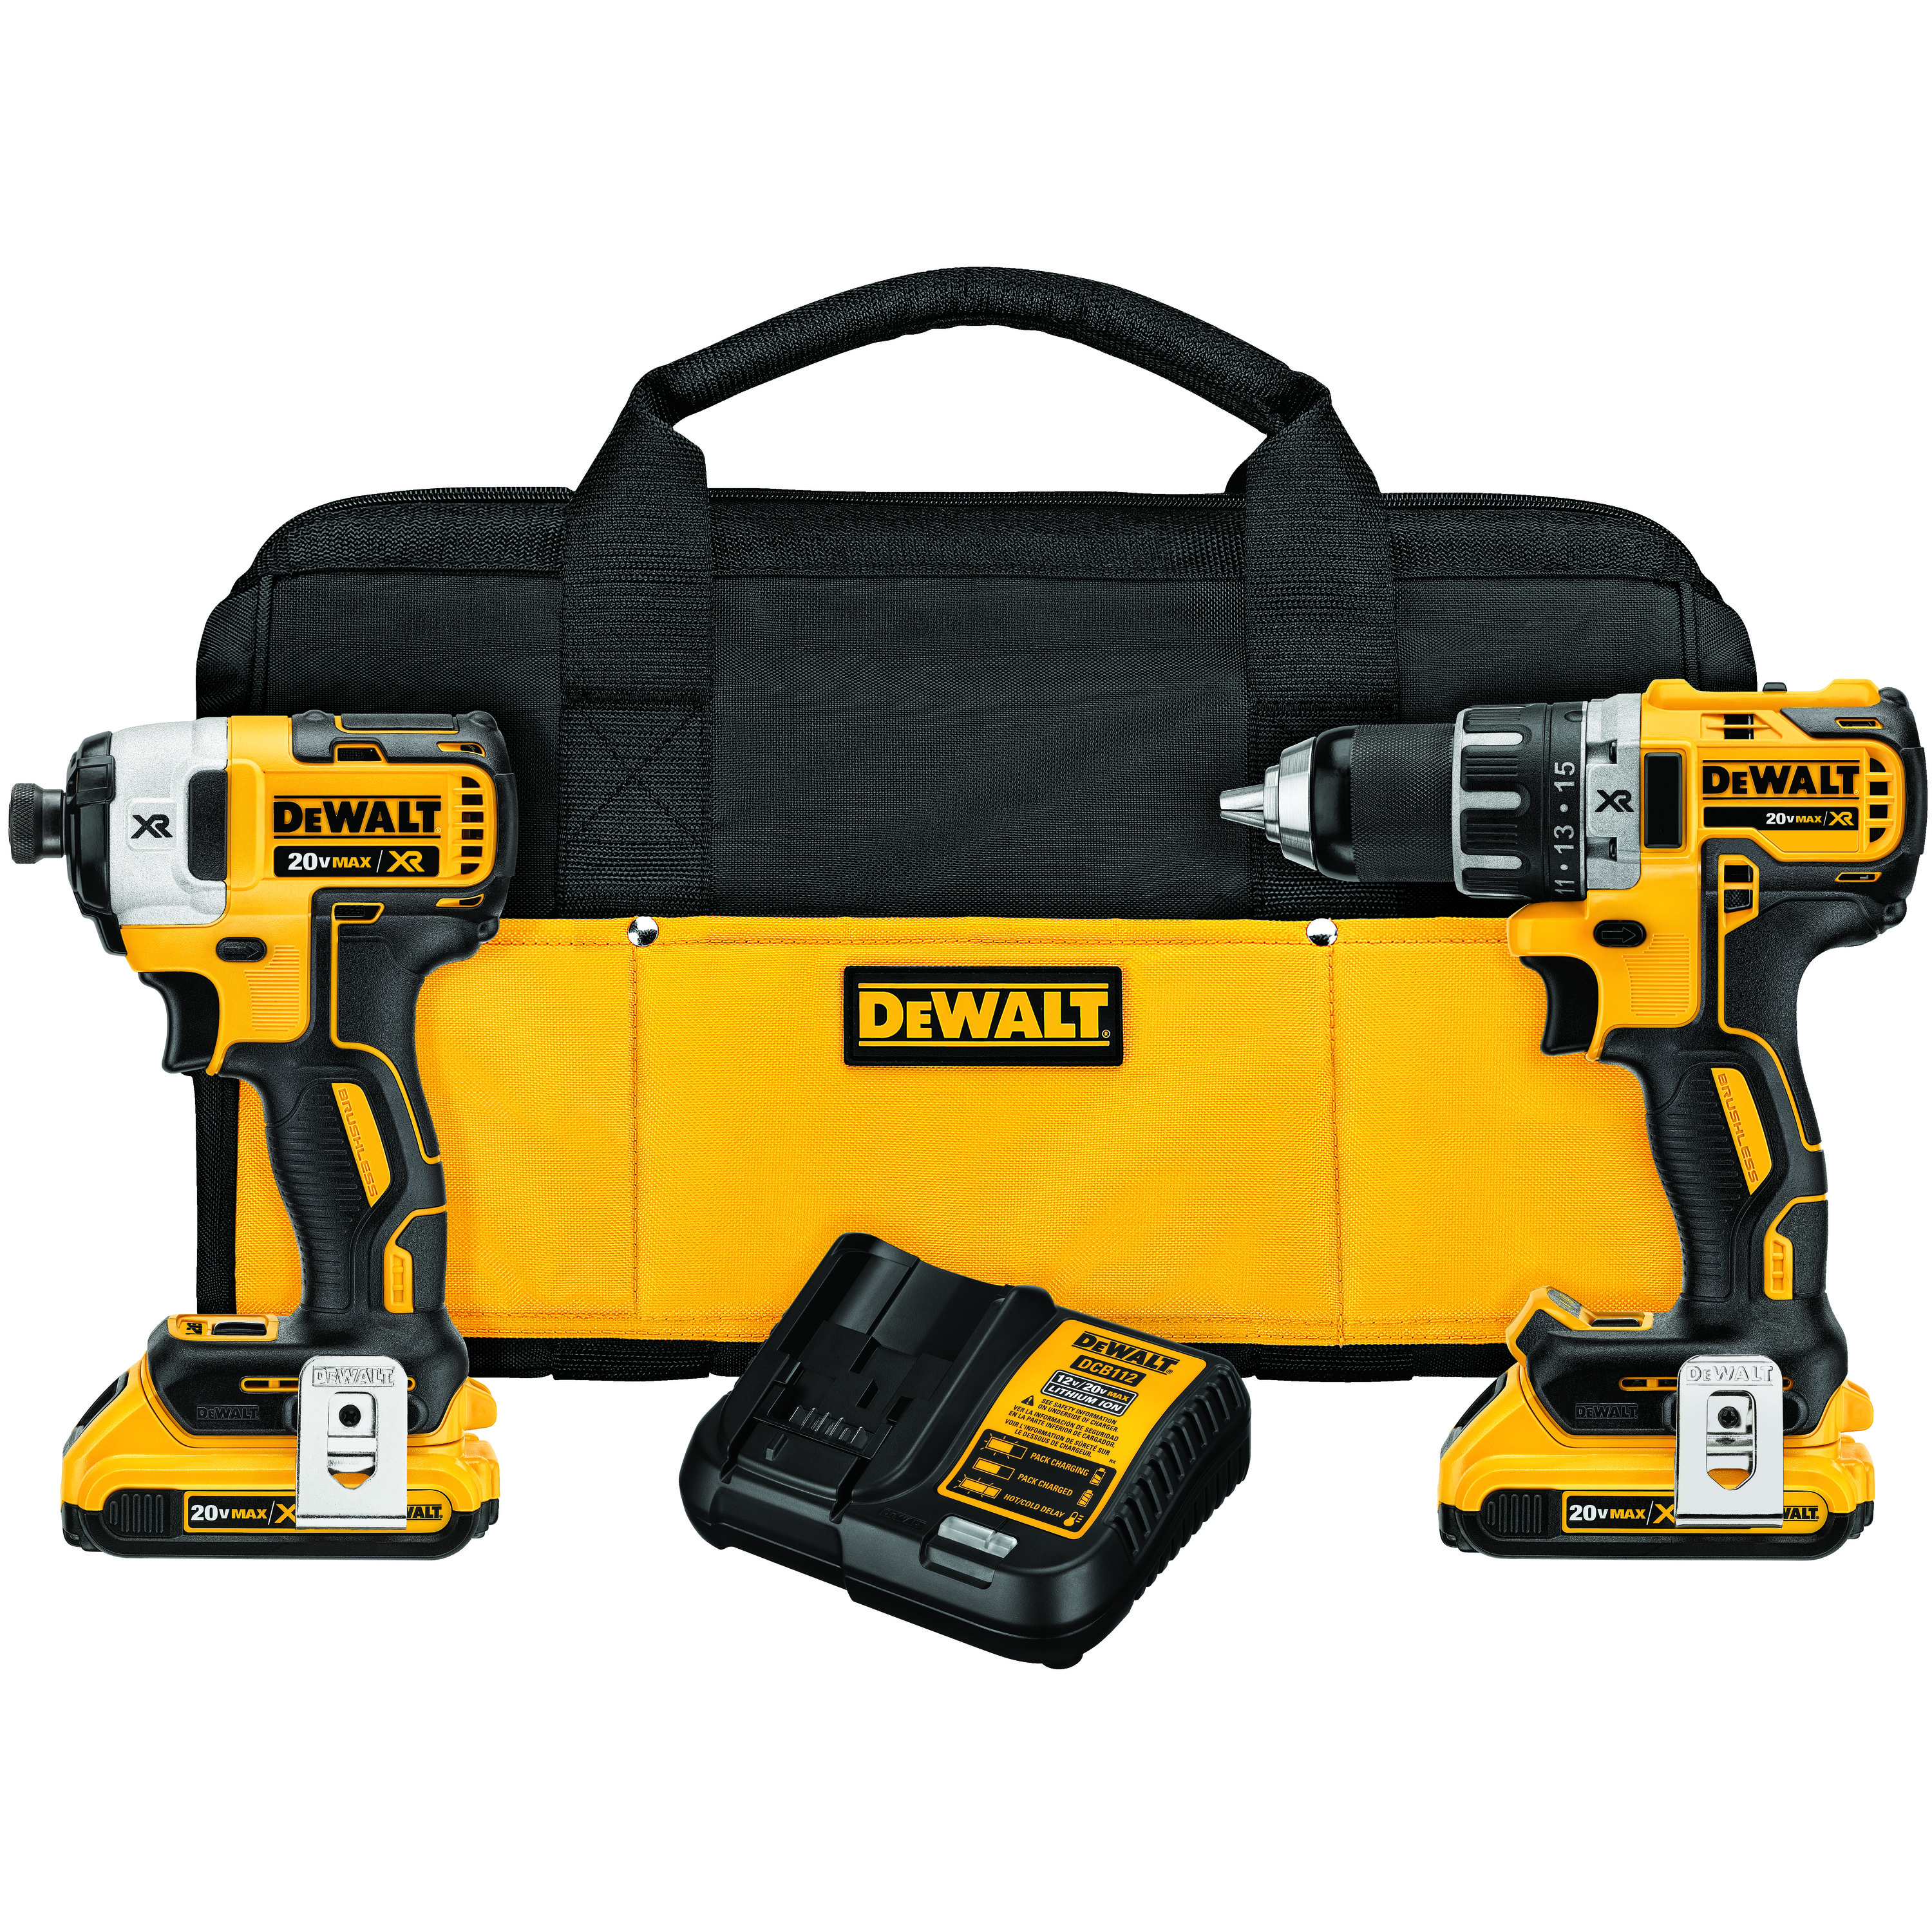 DeWALT® 20V MAX* MATRIX™ XR™ DCK283D2 2-Tool Compact Cordless Combination Kit, Tools: Drill, Impact Driver, 20 V, 2 Ah Lithium-Ion Battery